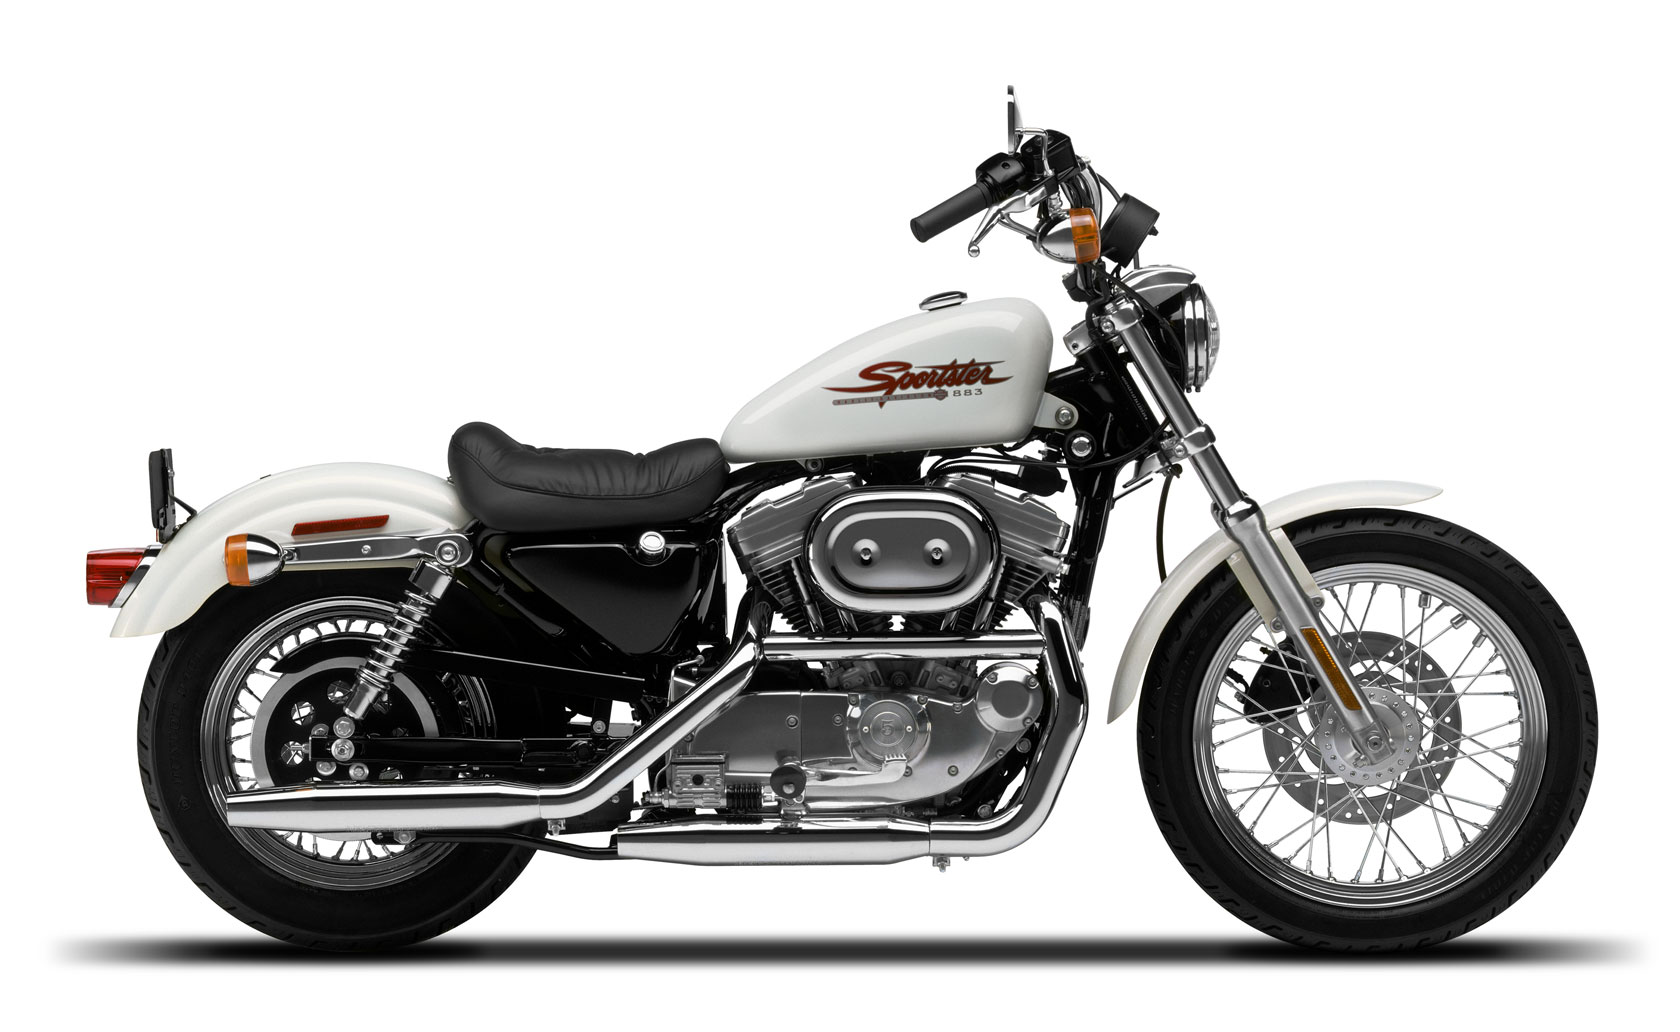 1990 Harley-Davidson XLH 883 Sportster Deluxe pic 3